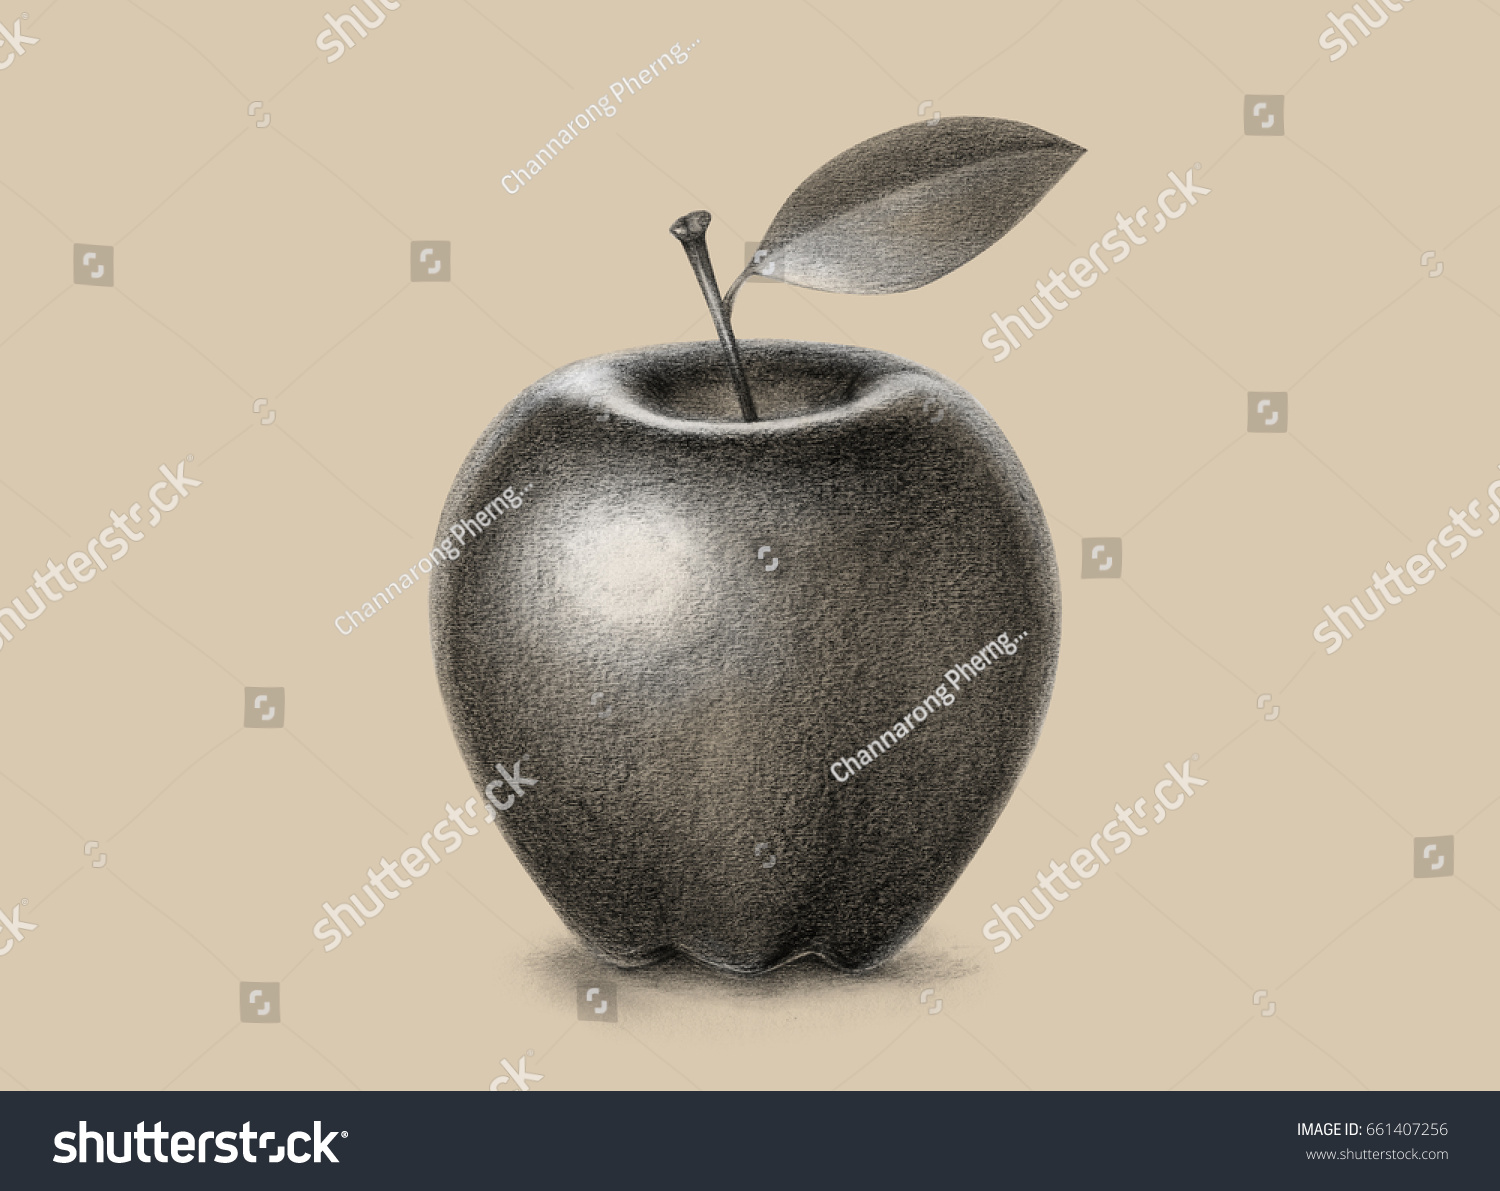 Apple pencil drawing black and white